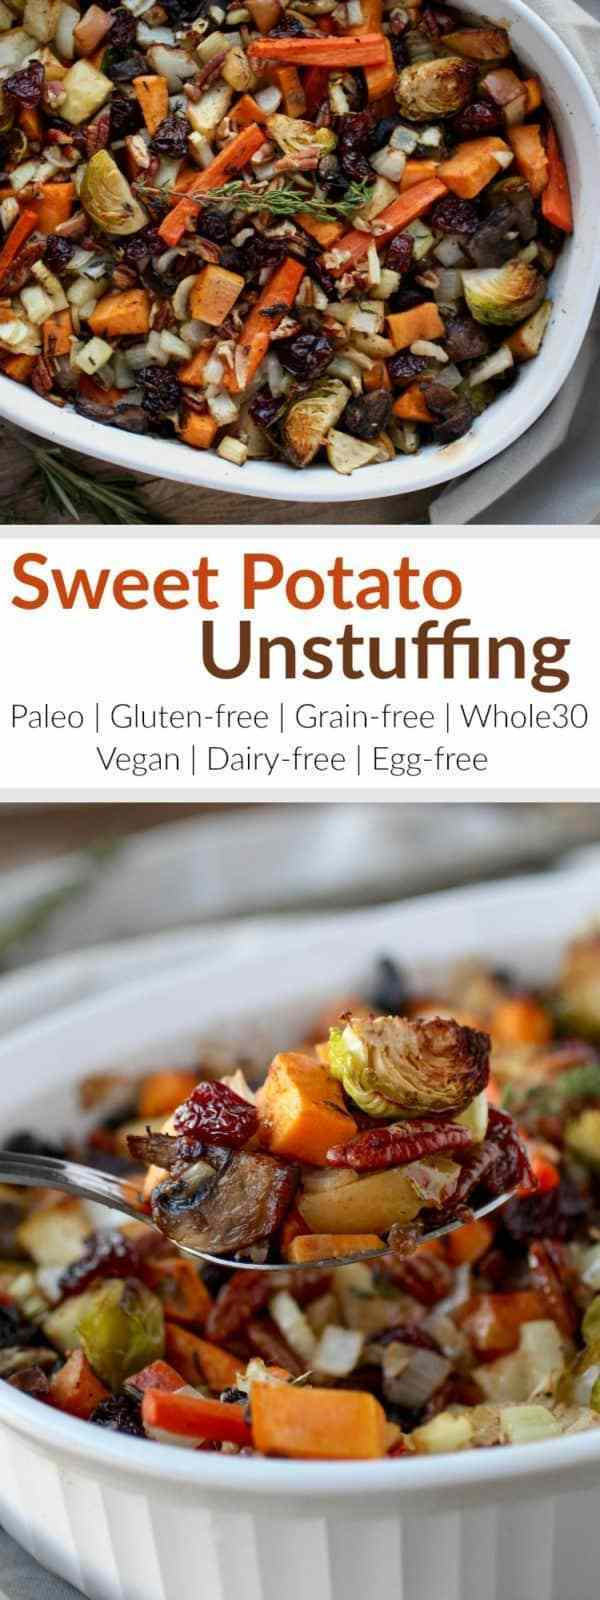 Vegan Sweet Potato Recipes Thanksgiving  Sweet Potato Unstuffing The Real Food Dietitians